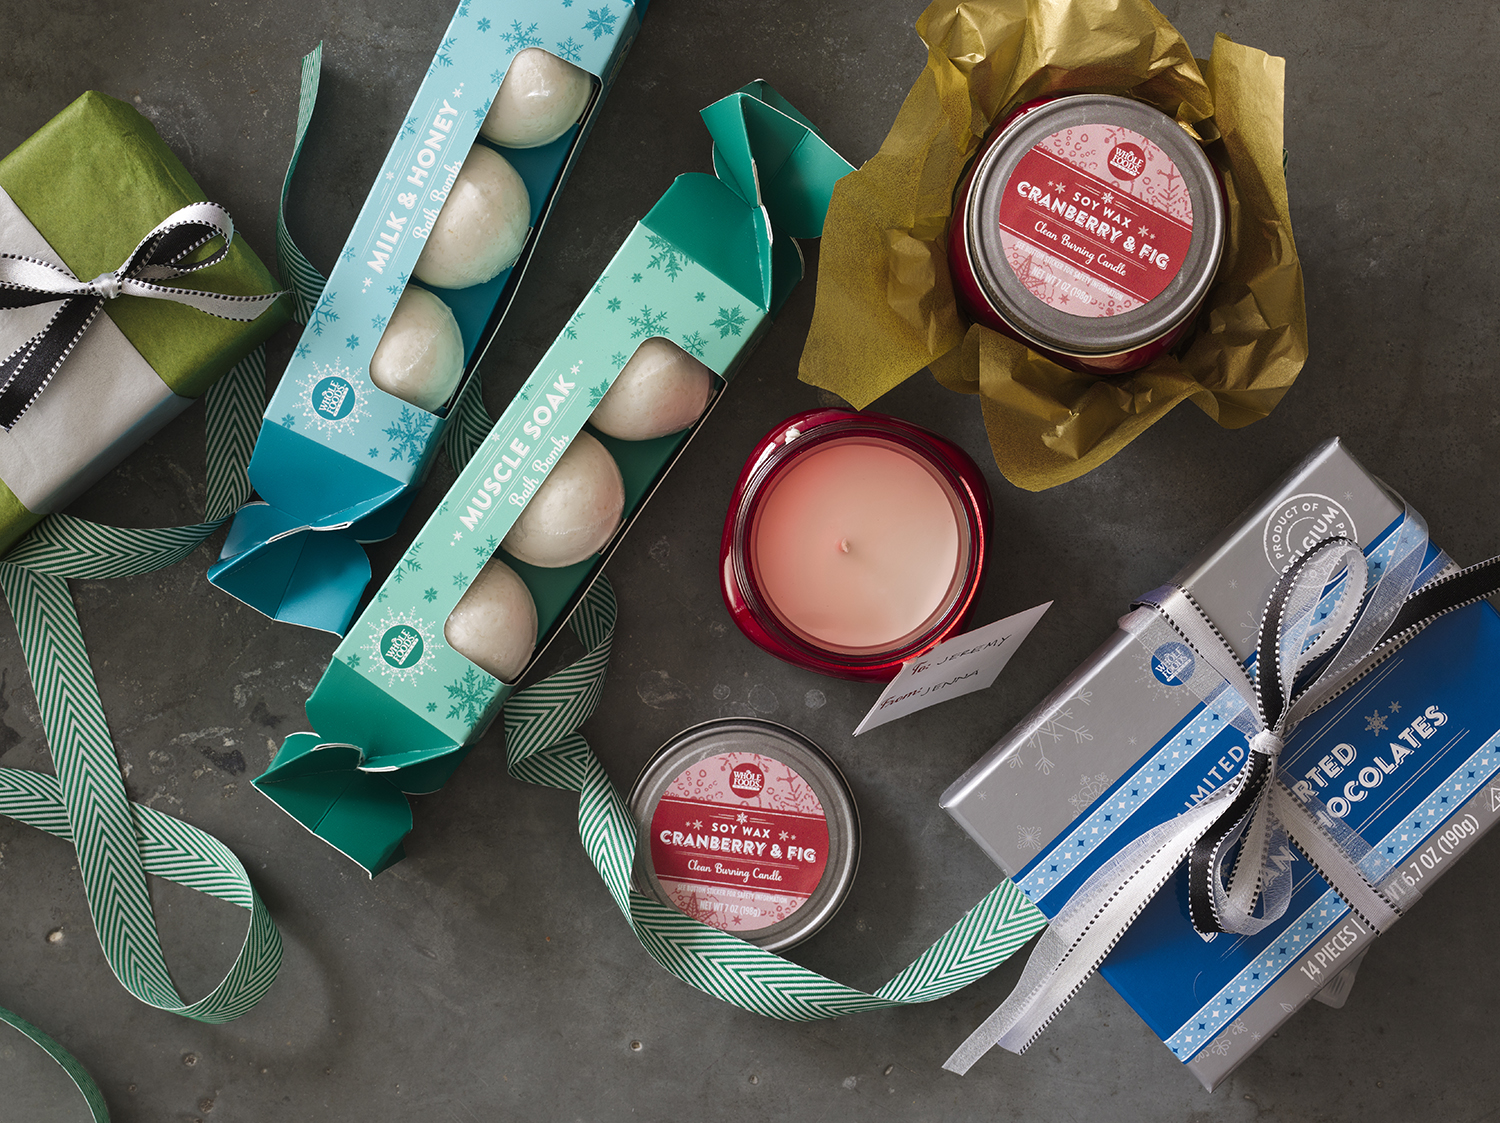 Assorted gifts under $25